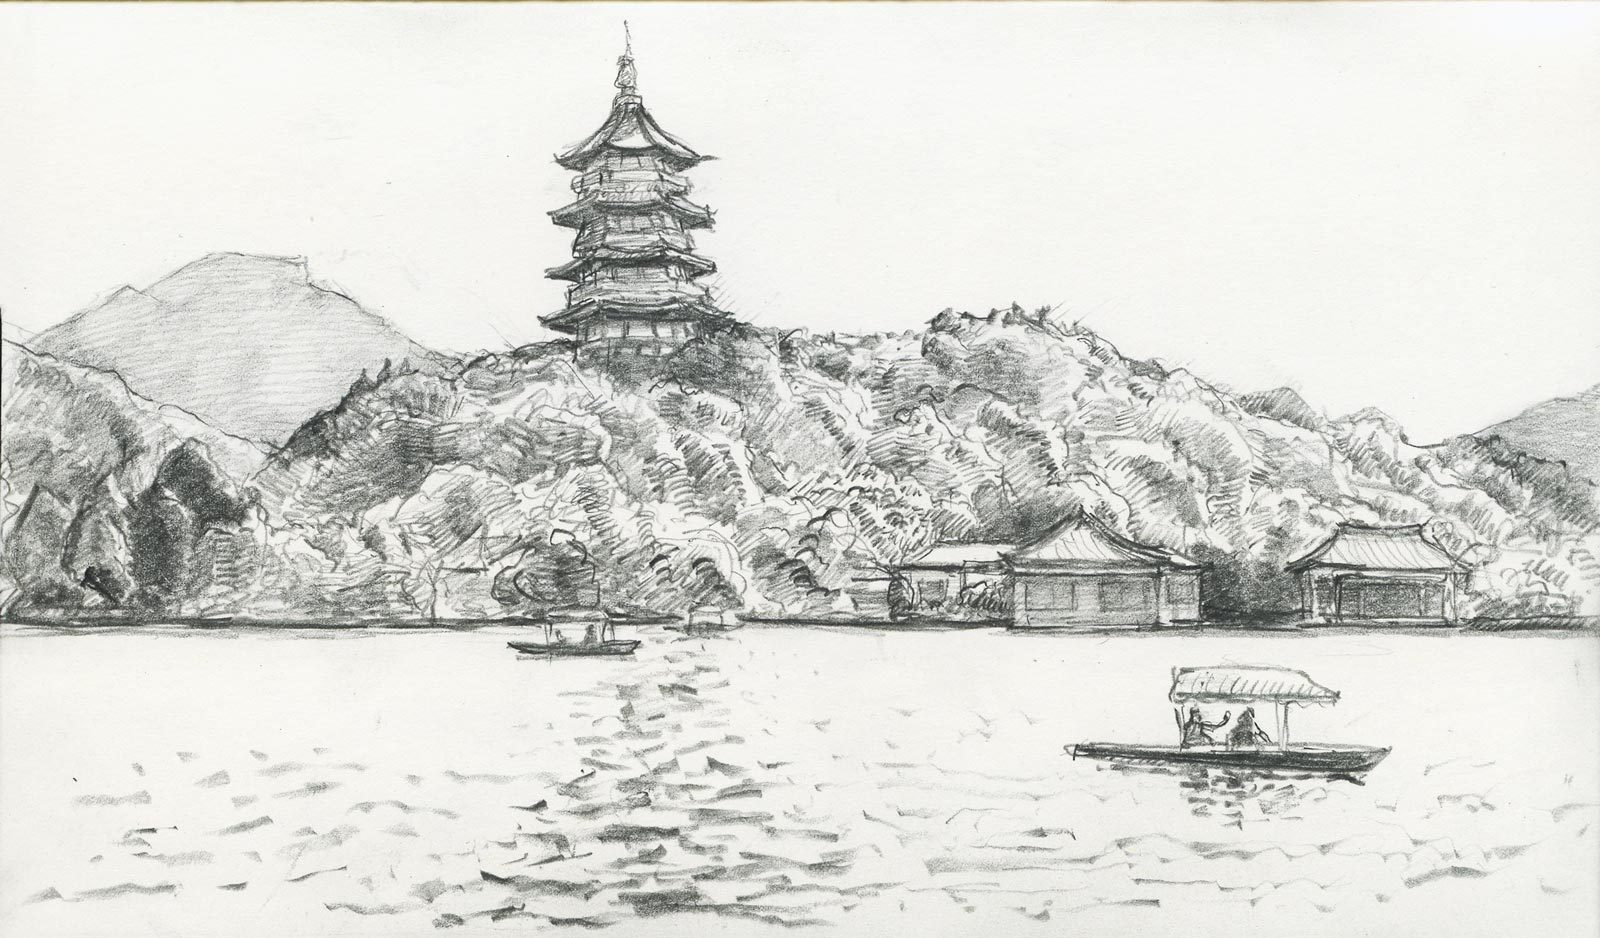 View of the Leifeng Pagoda, West Lake, Hangzhou, China